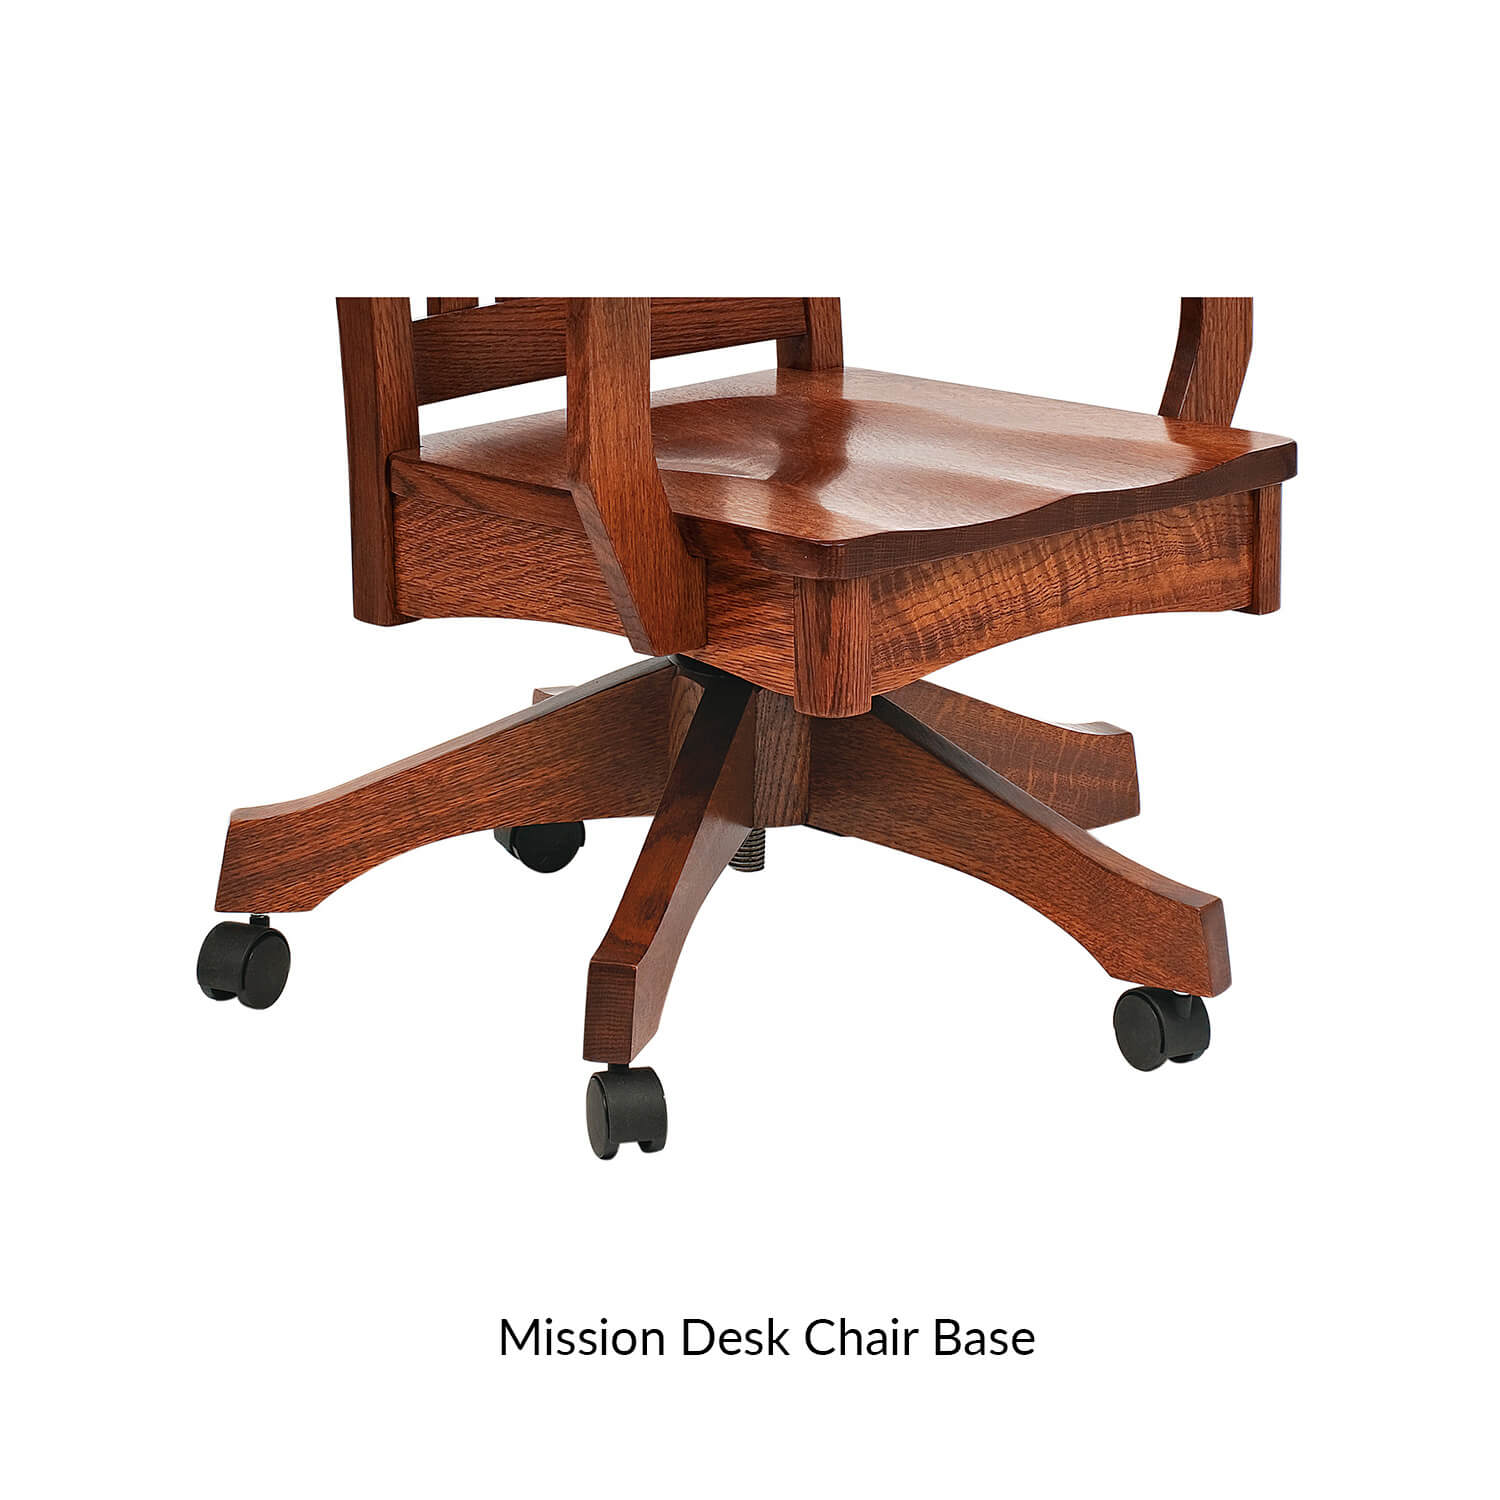 16.2-mission-desk-chair-base.jpg